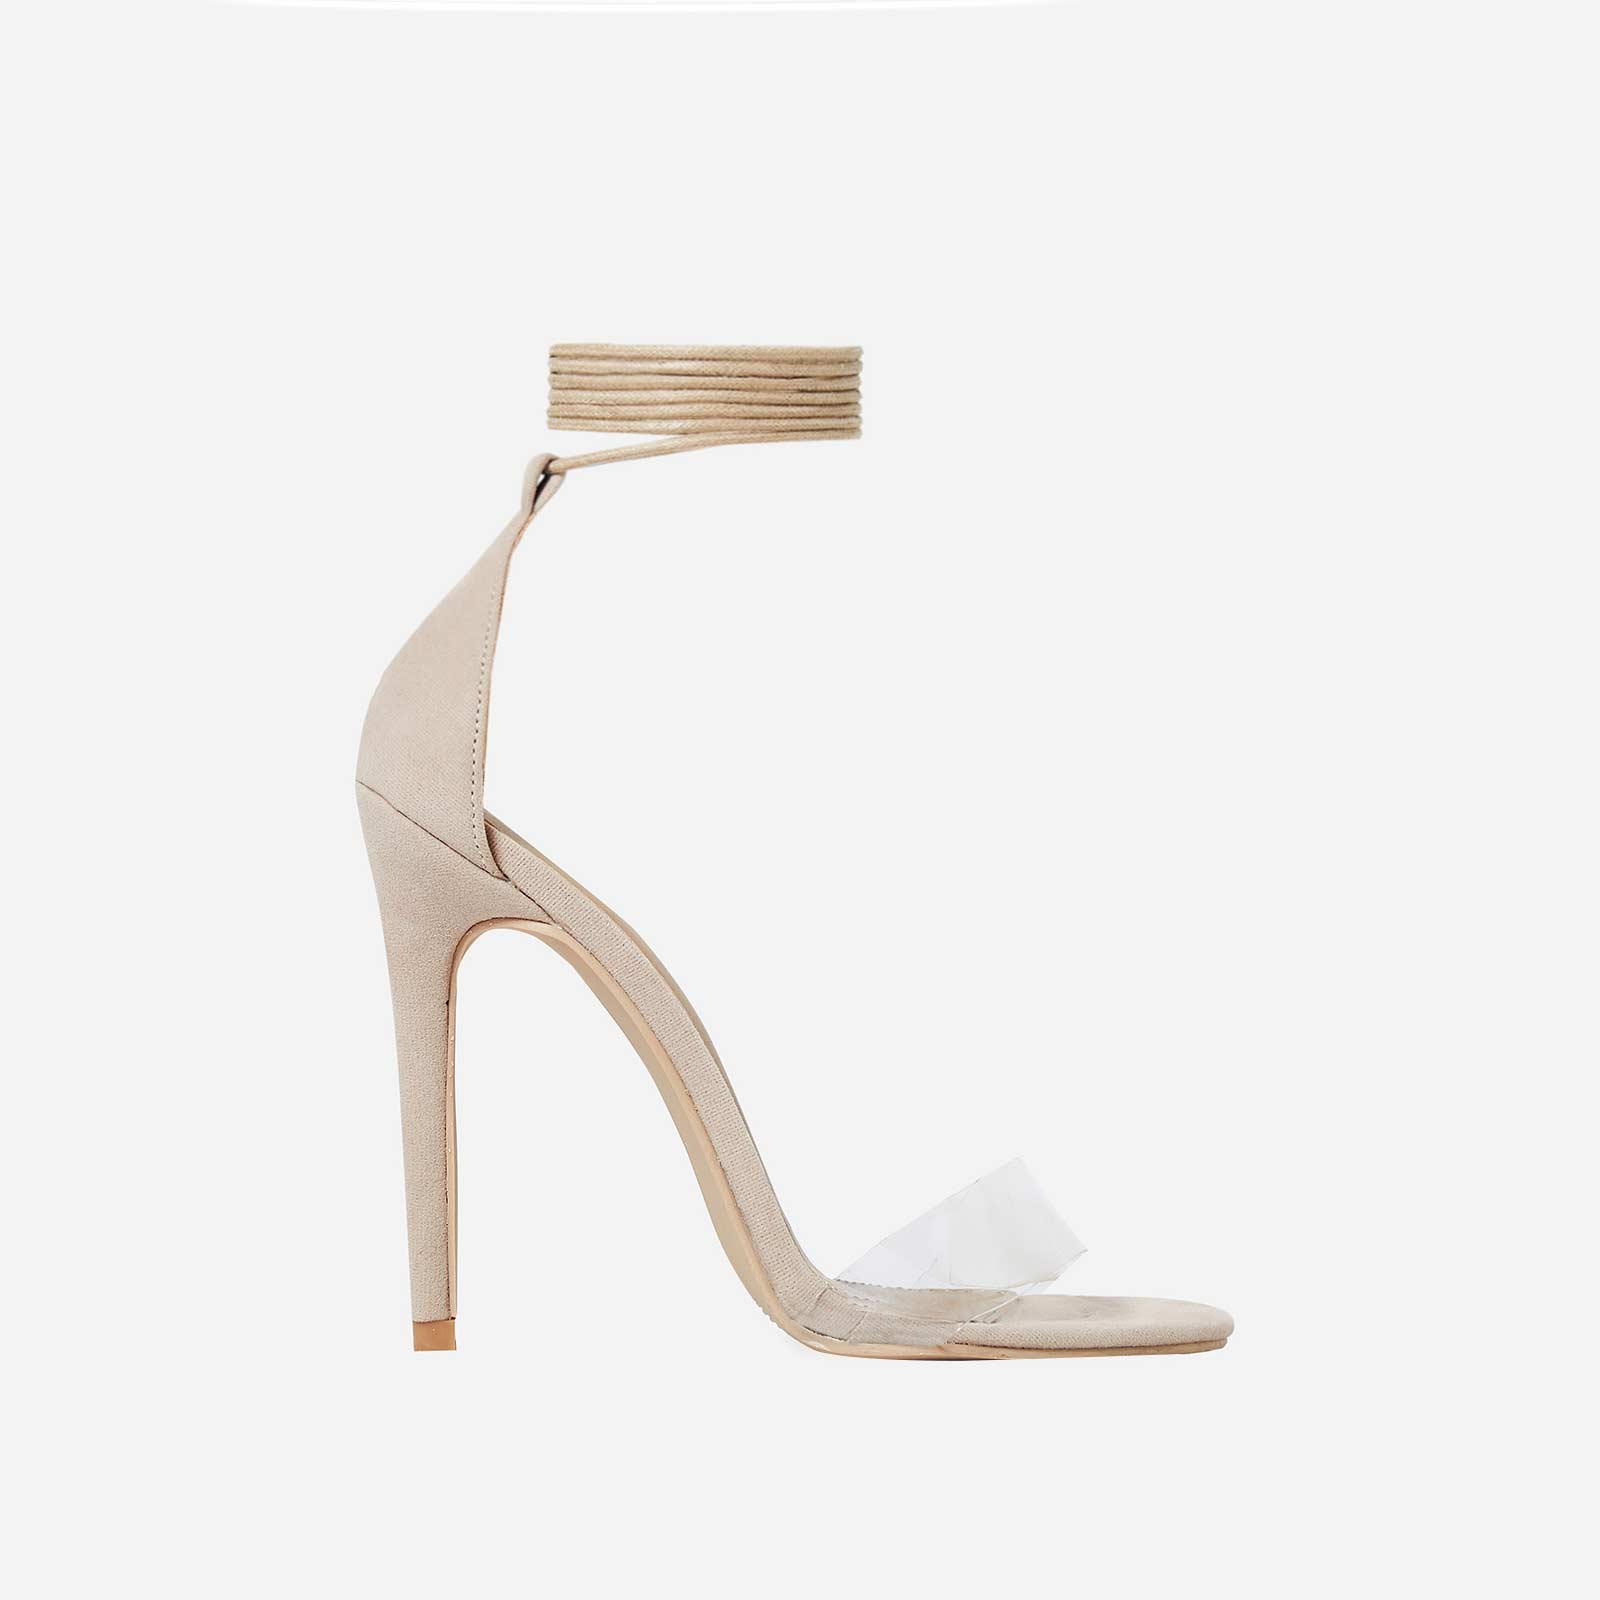 Perrie Lace Up Heel In Nude Faux Suede